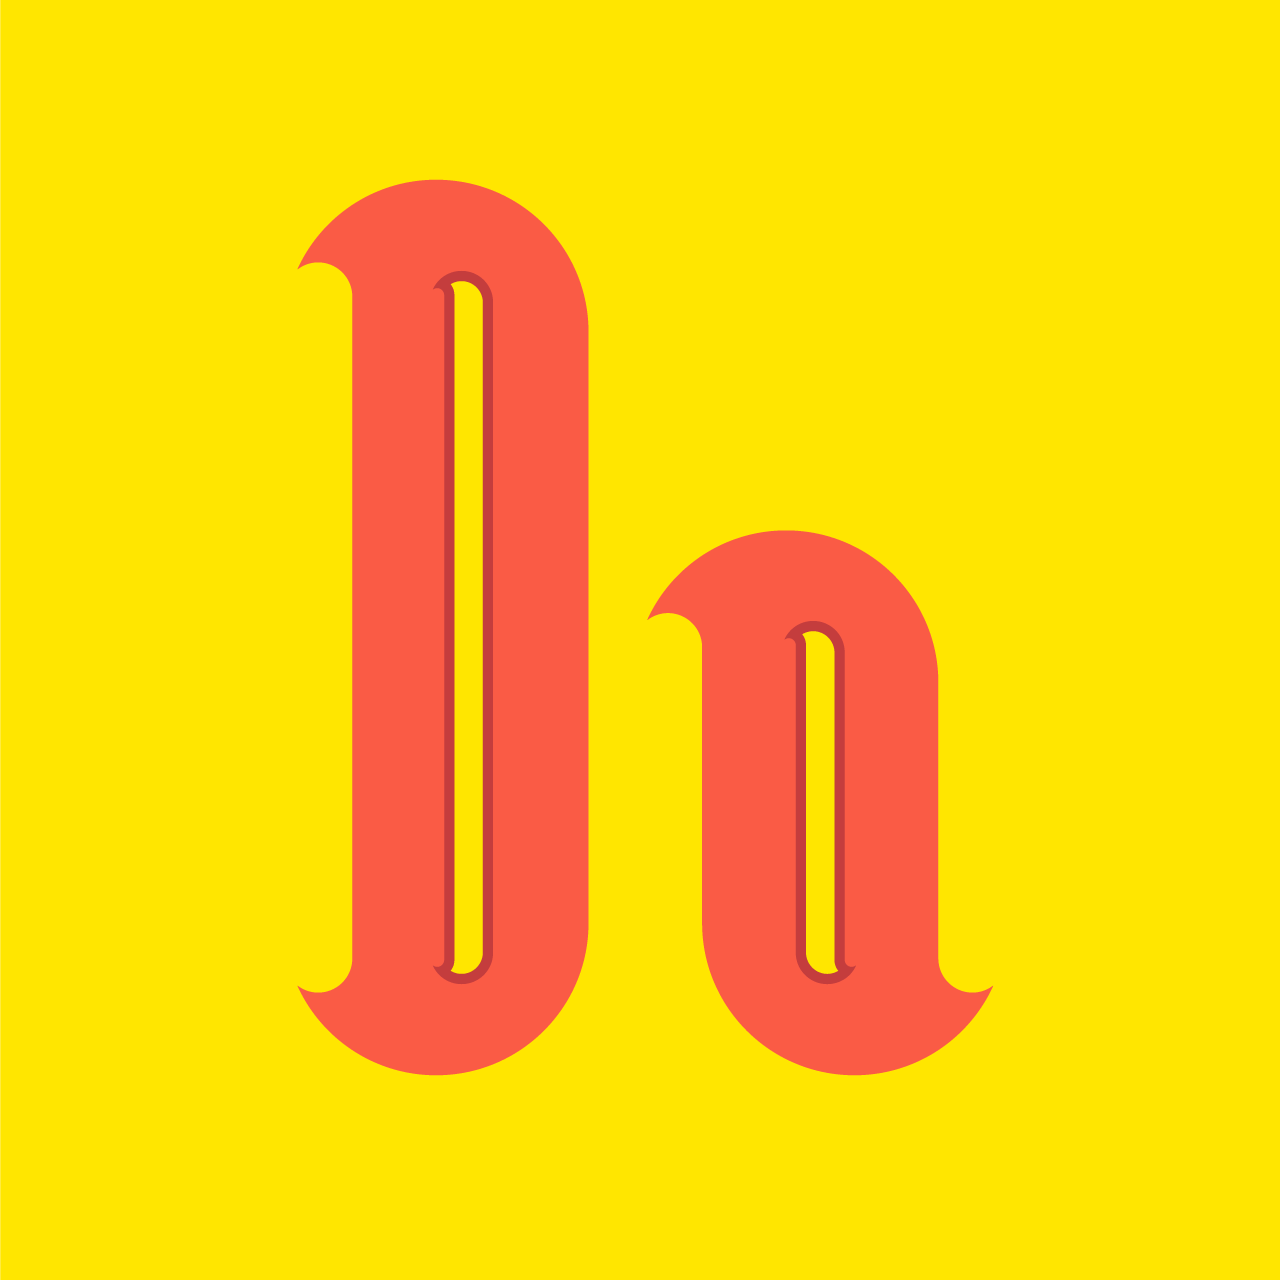 My H submission for 36 Days of Type